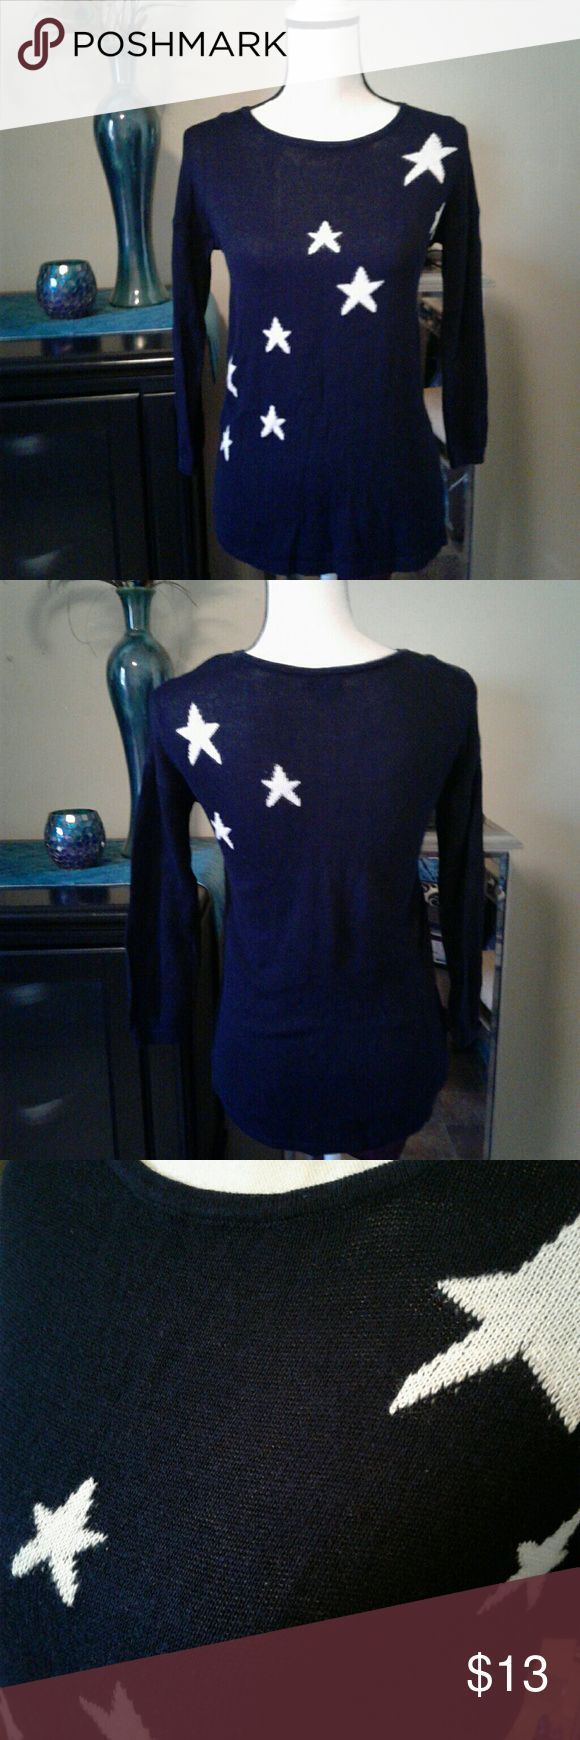 """Old Navy Star Sweater Women's like new navy Old Navy lightweight 3/4 sweater with white stars size Medium. Measurements Chest 16"""" length 24"""" sleeve 14"""". Thanks for looking Bundle to save!! Old Navy Tops Blouses #sweatersforwomen"""